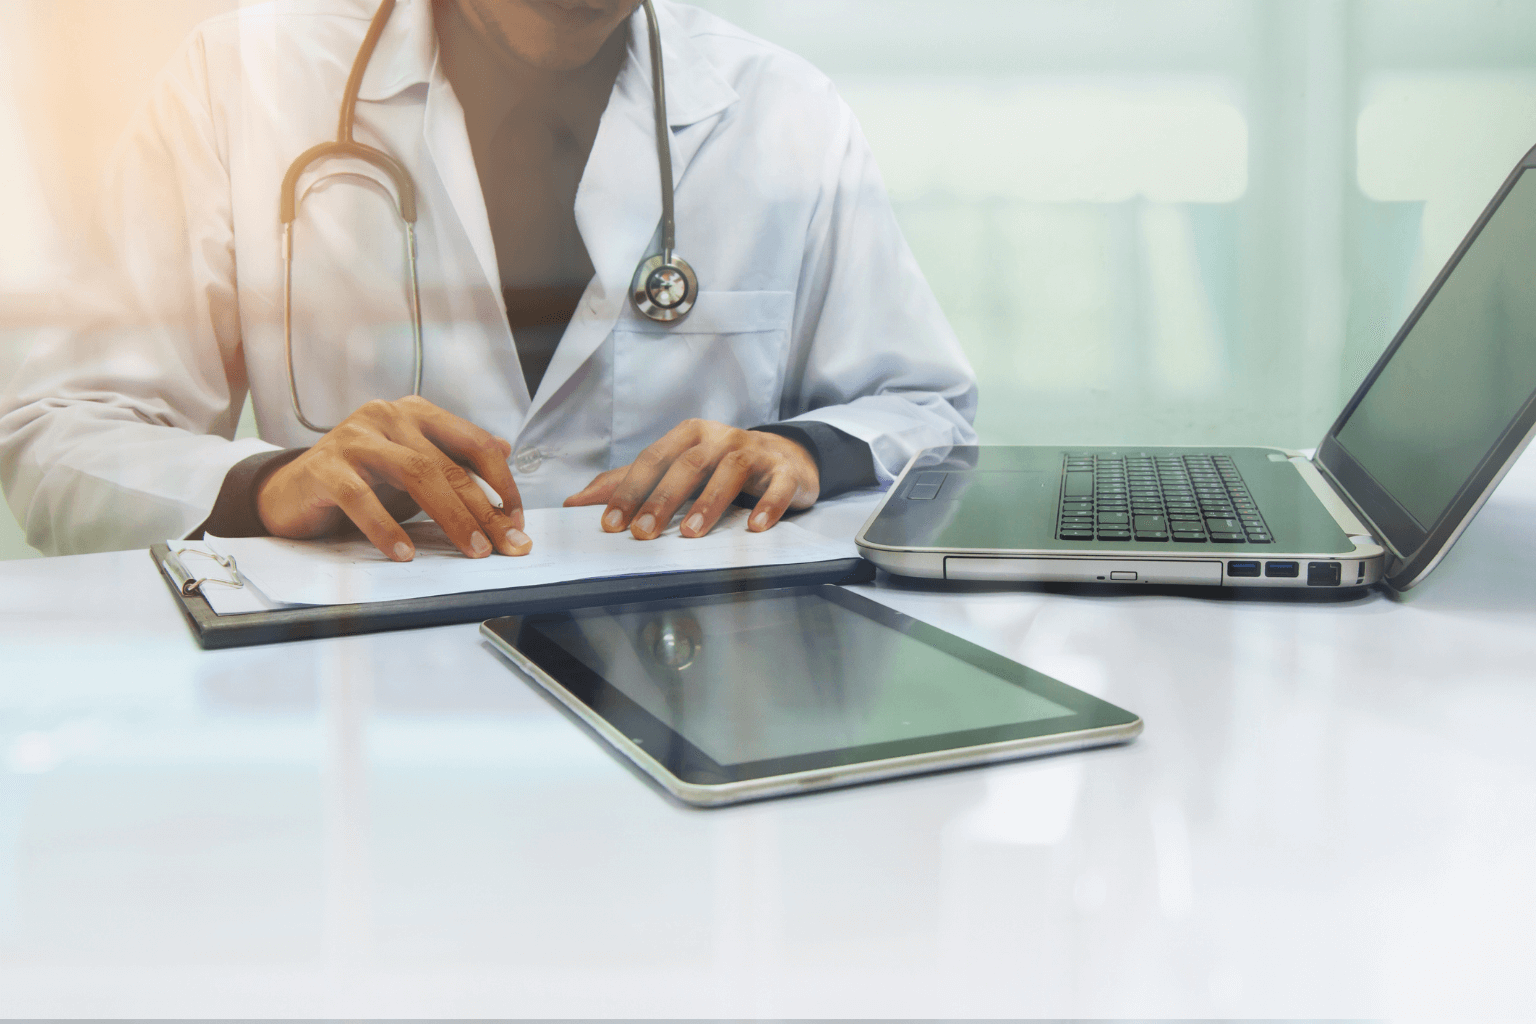 medicine-doctor-working-with-computer-notebook-and-digital-tablet-at-desk-in-the-hospitaljpg